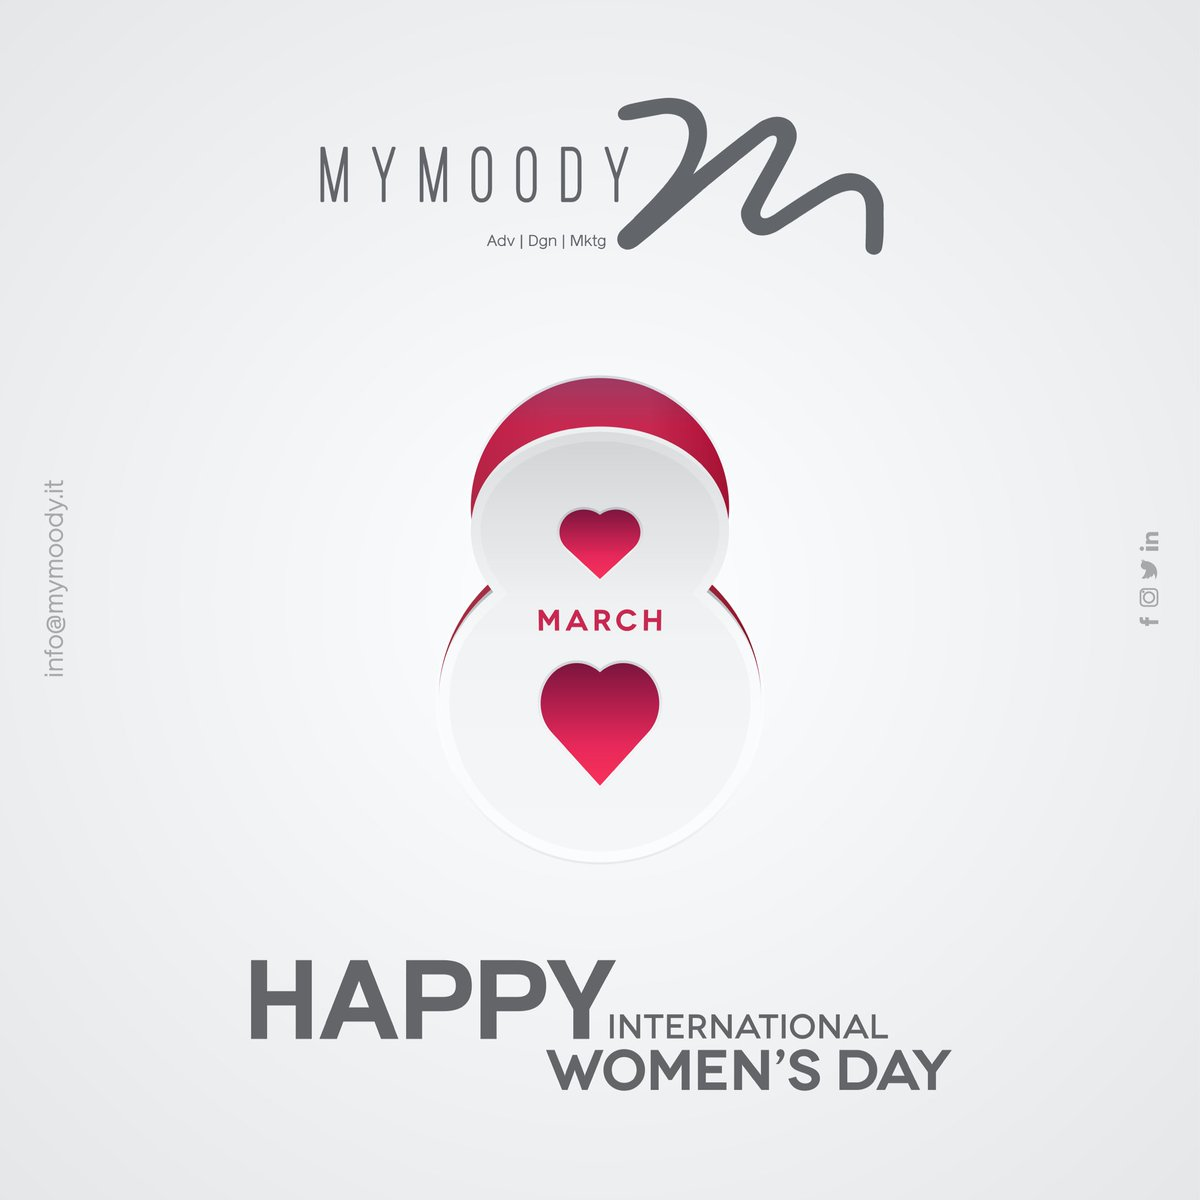 MYMOODY | HAPPY WOMEN'S DAY |  info@mymoody.it | #creativity #graphicdesign #art #dream #love #life #follow #design #fashion #mystery #culture #charm #beauty #photo #excellence #cult #future #sky #story #mymoody